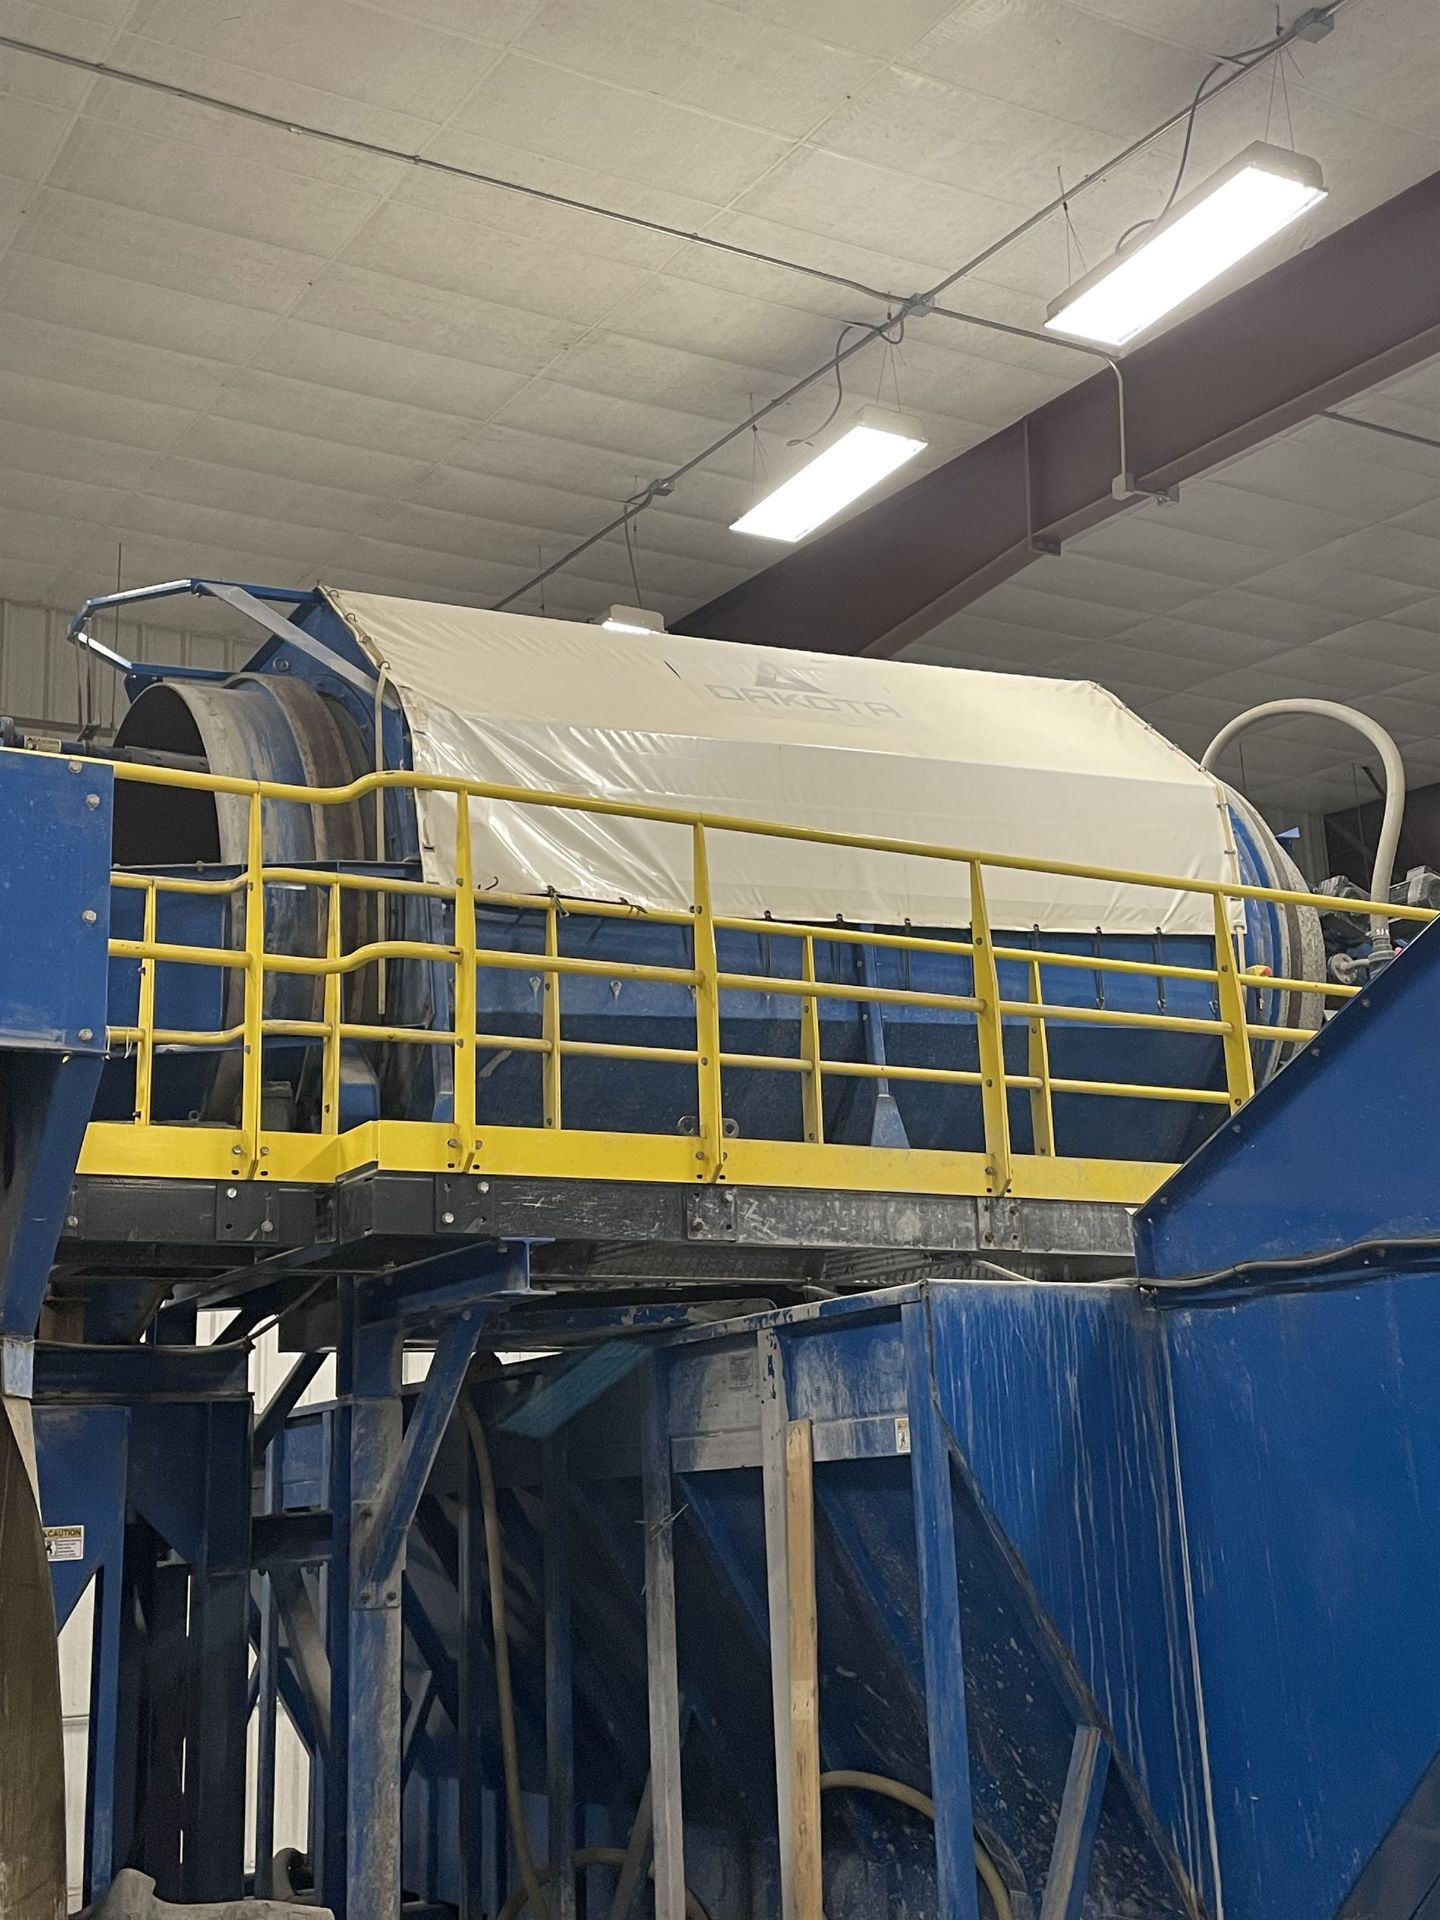 2015 LUBO SYSTEMS WASHING DRUM 1800x5000 Rotary Washing Drum, s/n 800108-0160, 1.8 m Drum - Image 3 of 6